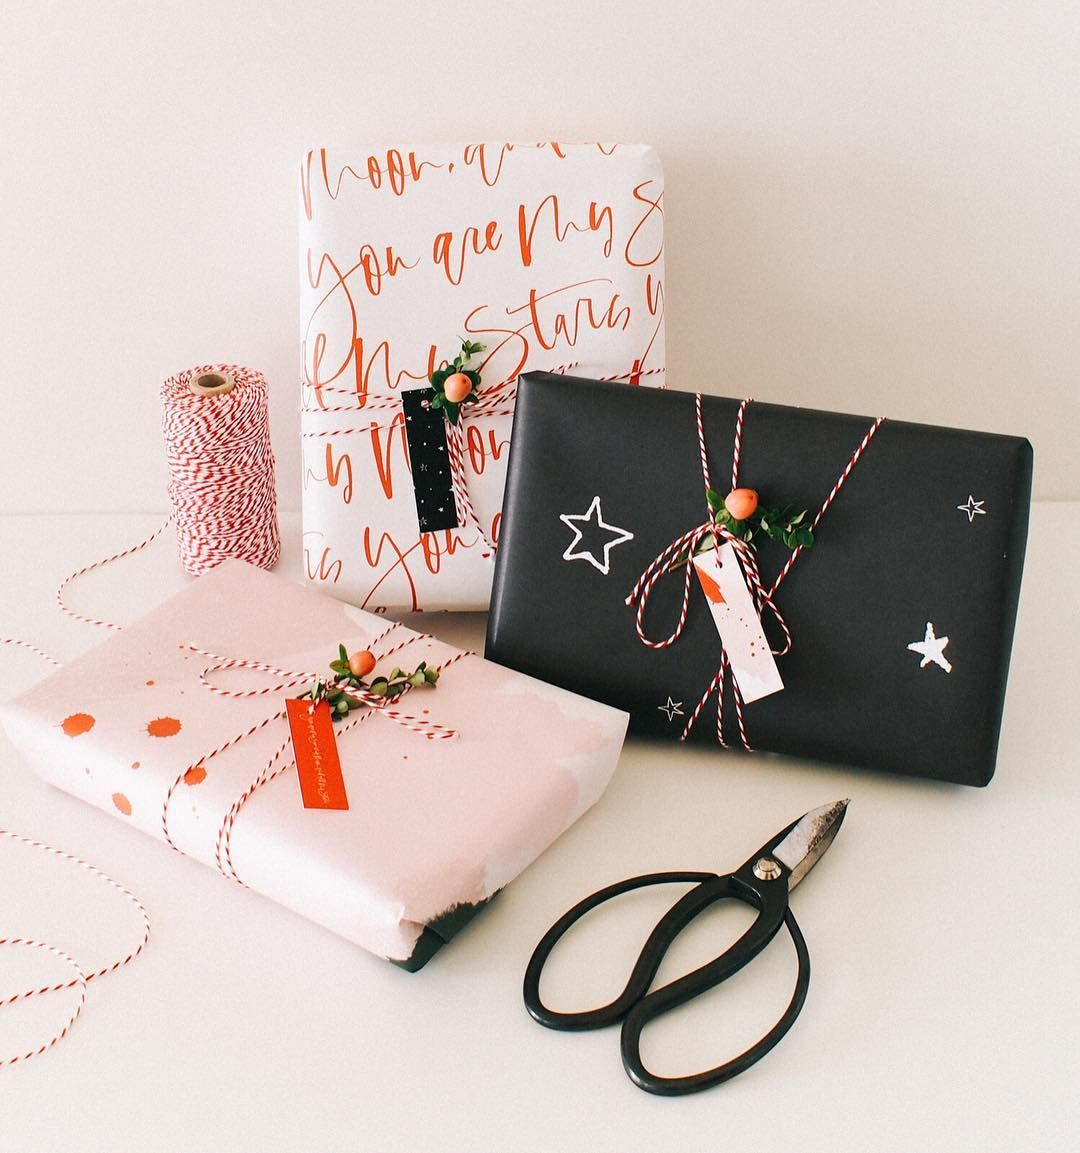 Christmas gift wrapping ideas 2017 | HOMES